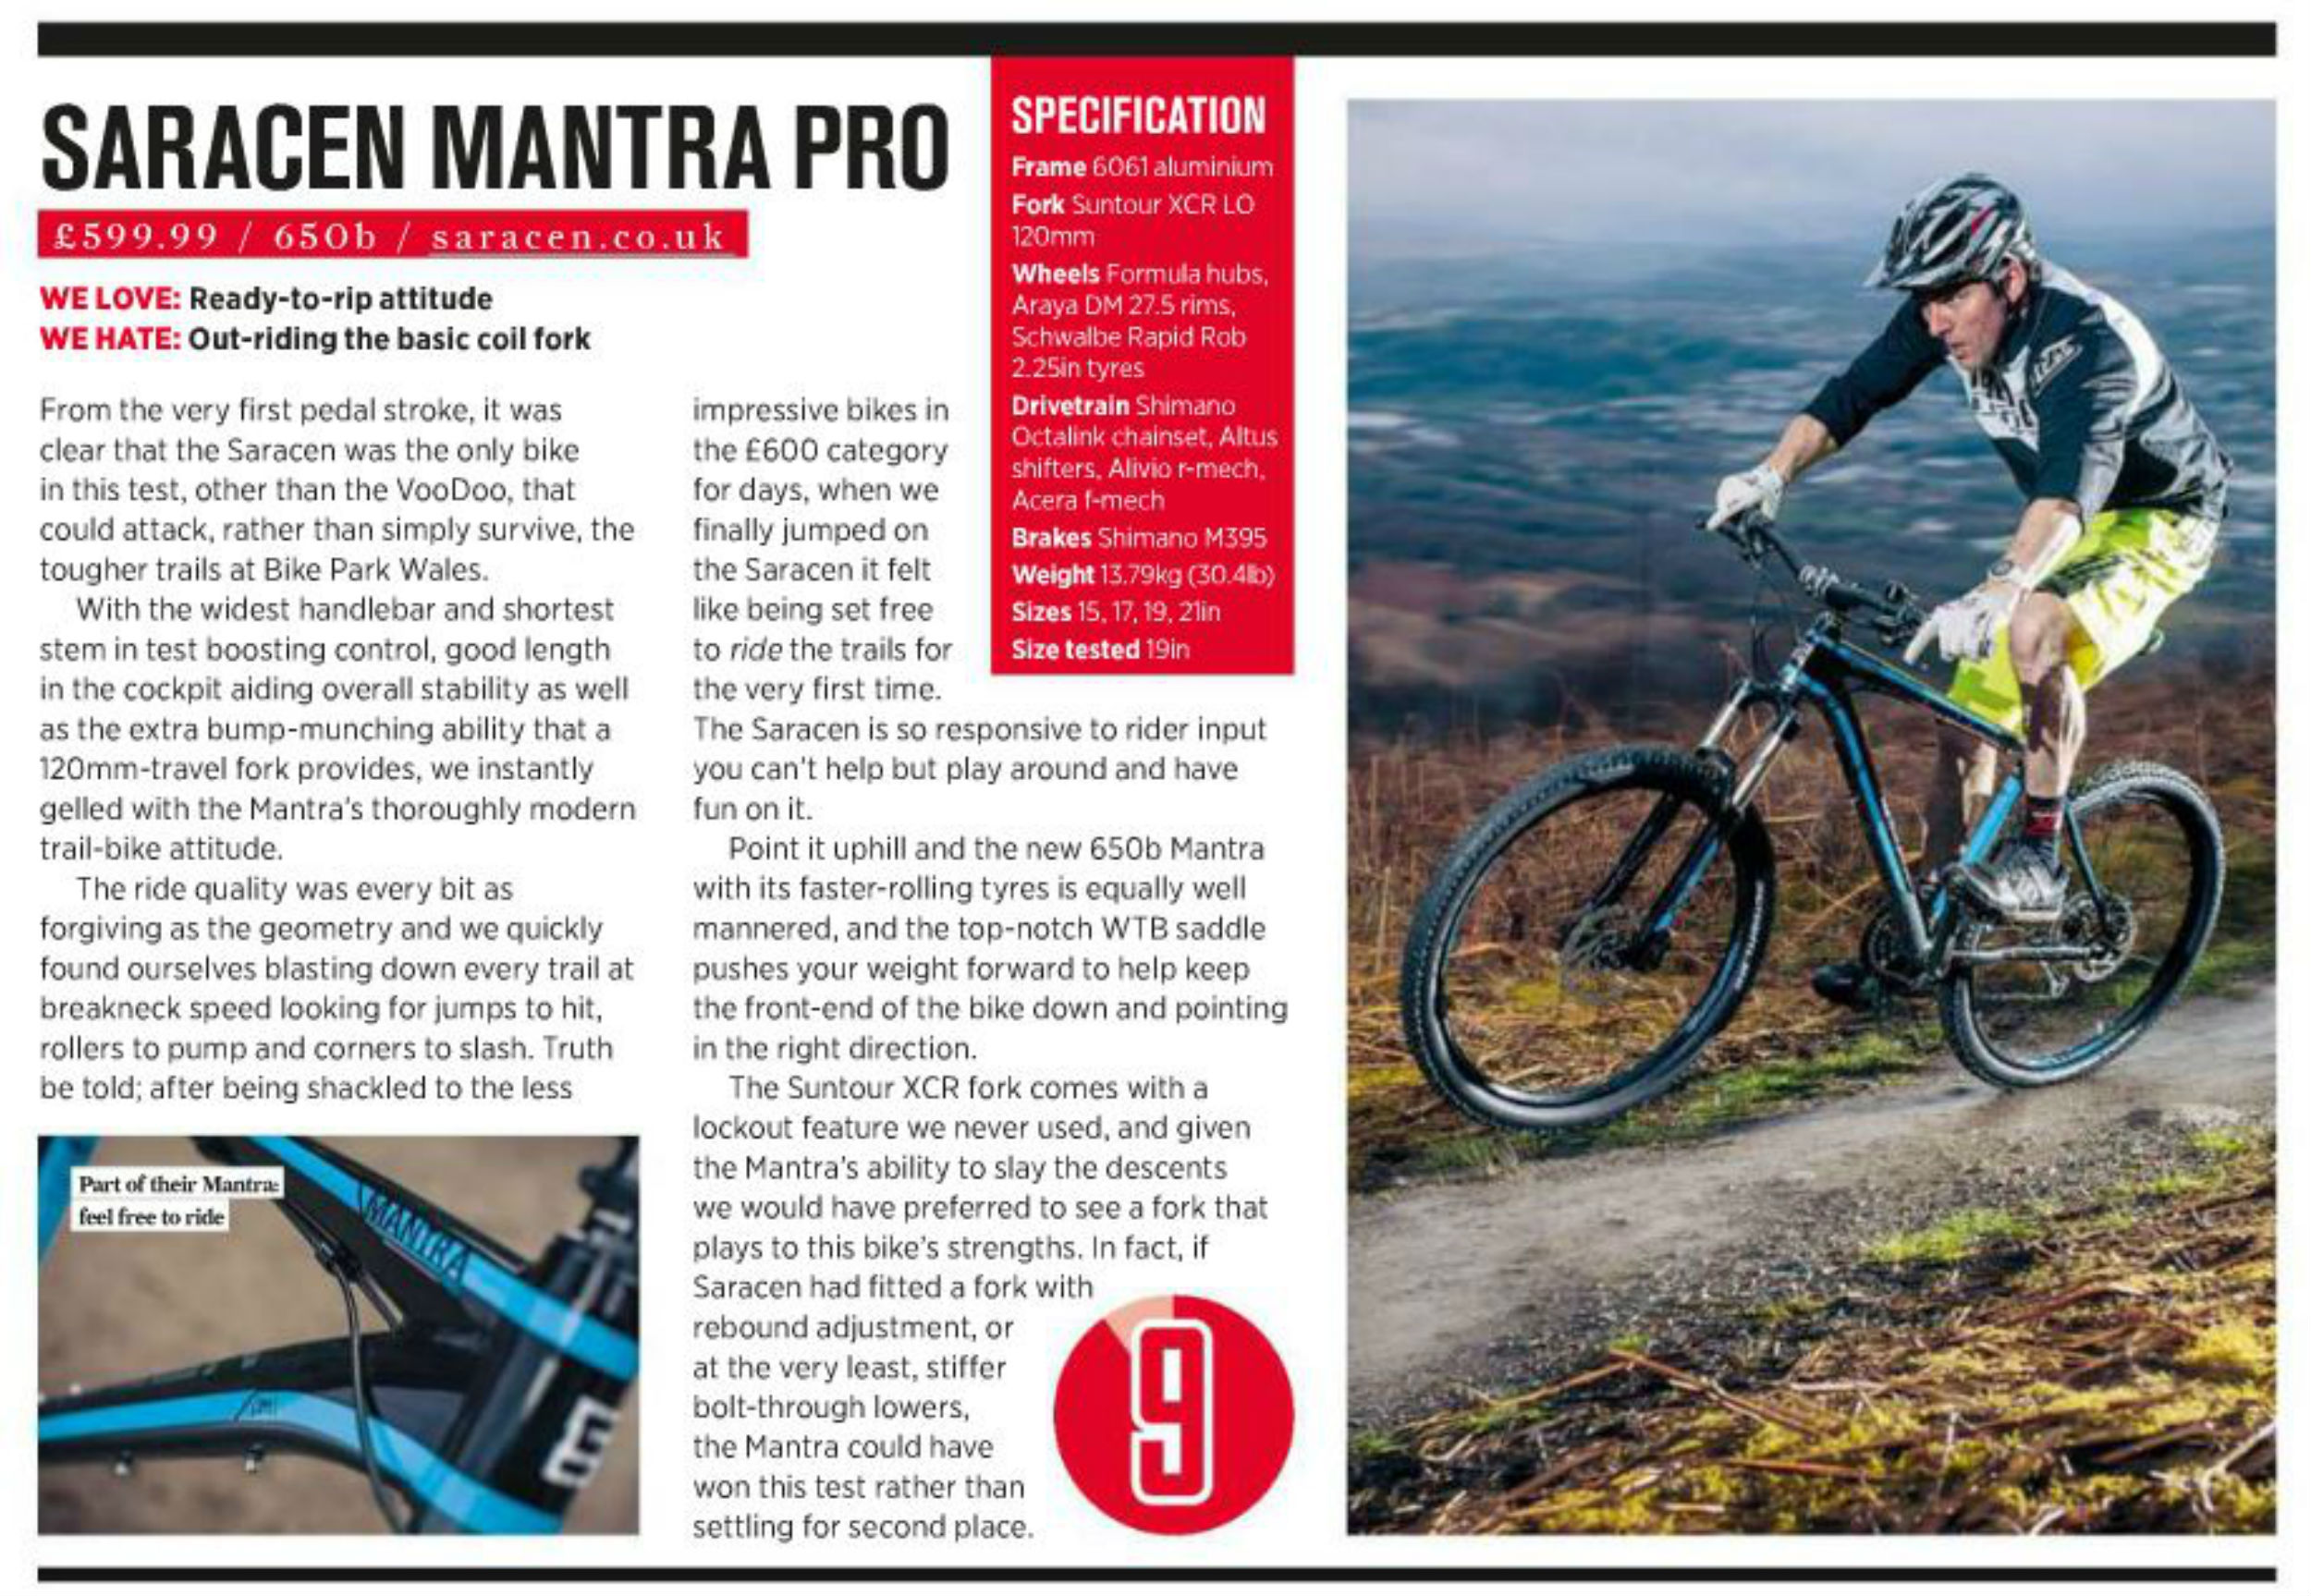 Saracen Mantra Pro - MBR hardtail of the year grouptest